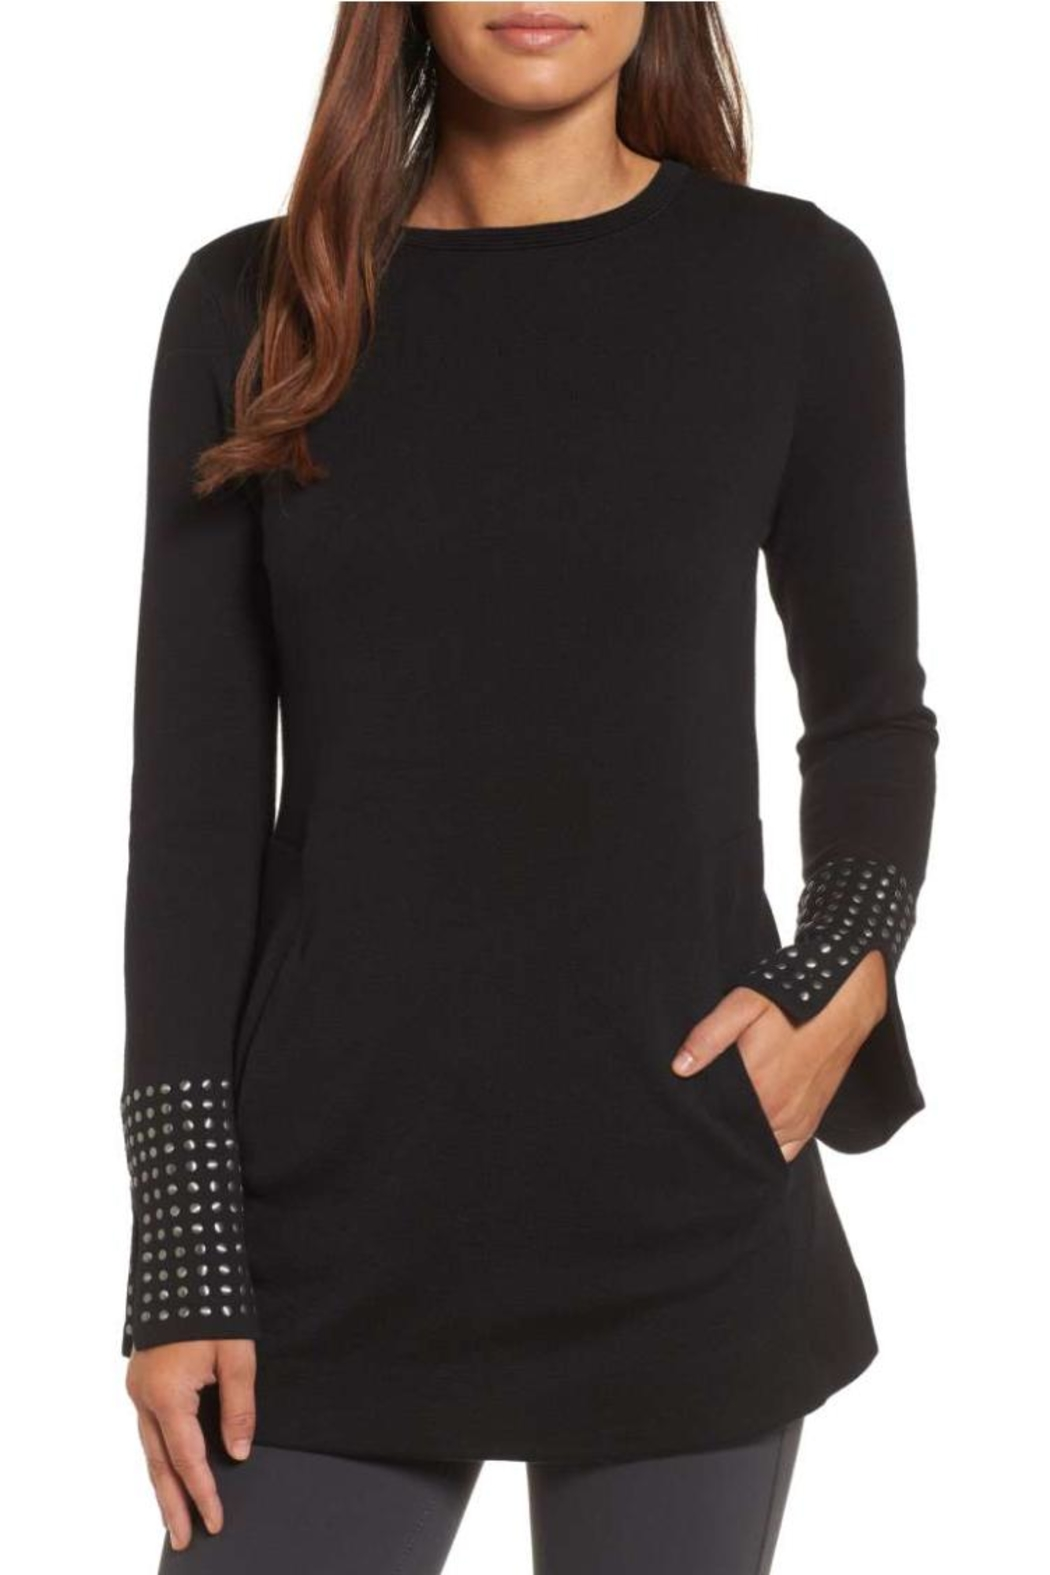 Nic + Zoe Stud Cuff Top - Front Cropped Image